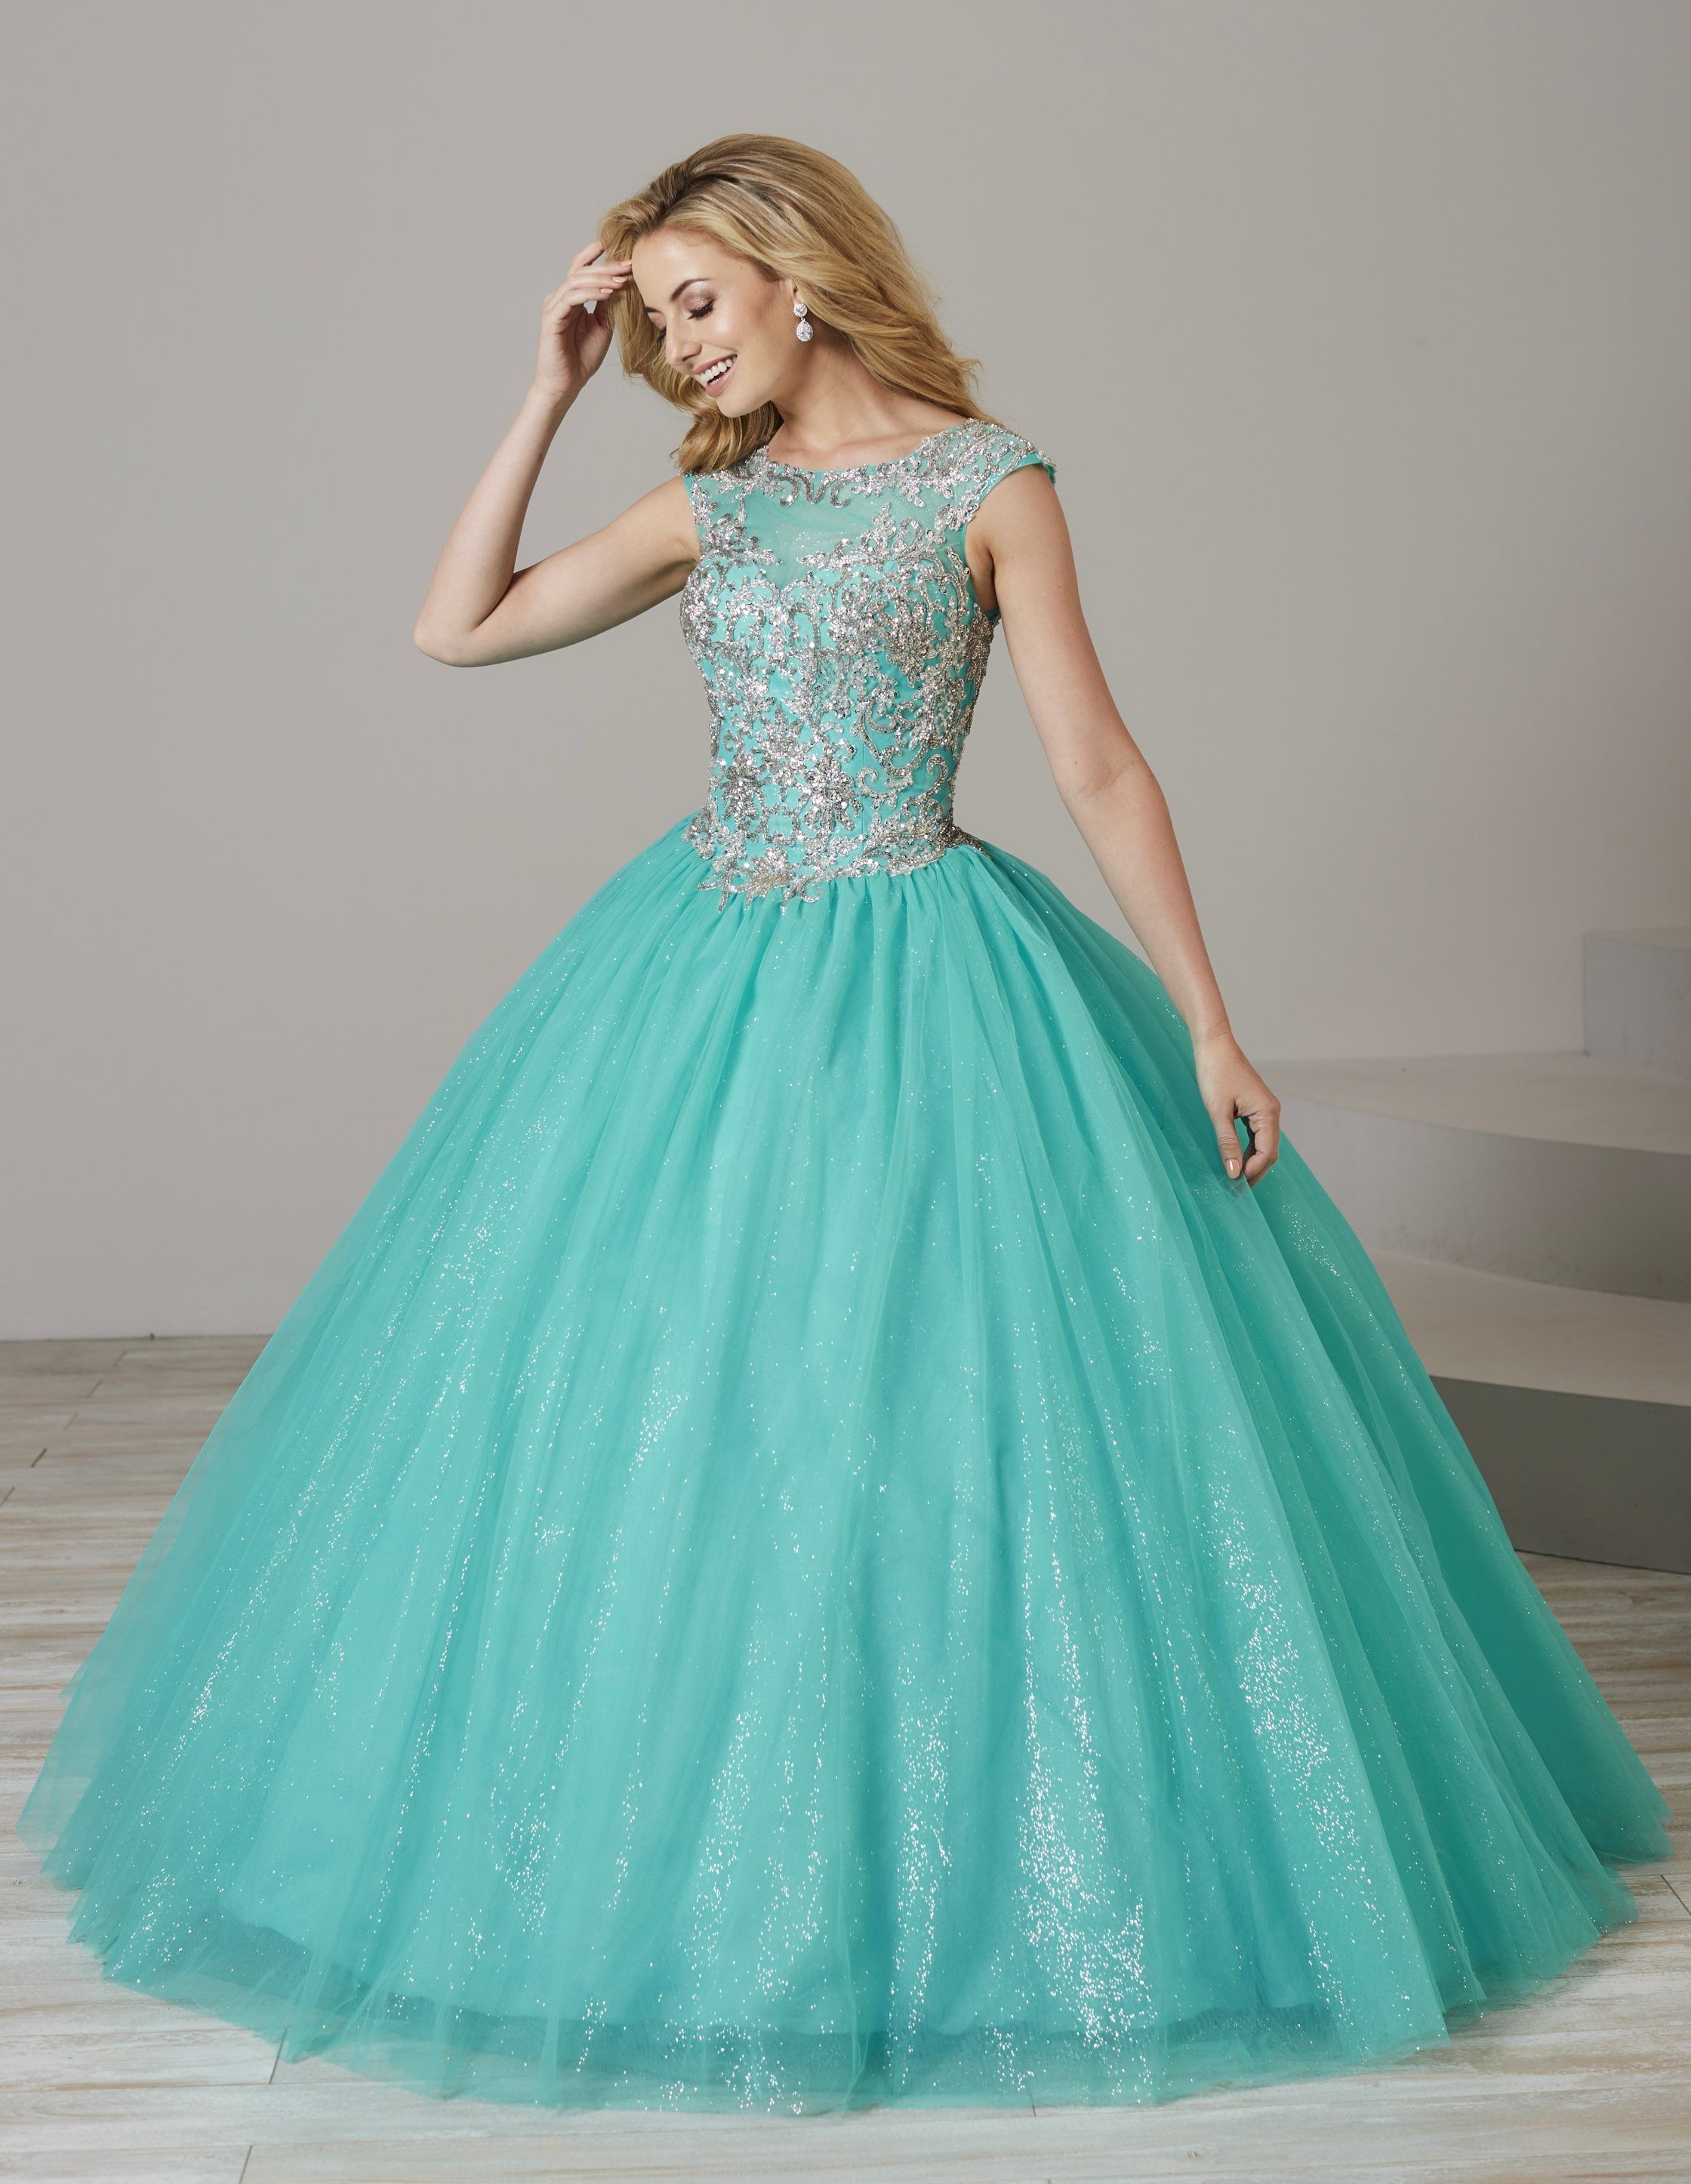 Beaded Illusion Quinceanera Dress by Fiesta Gowns 56368 (Size 12 - 22) acbc92313f70